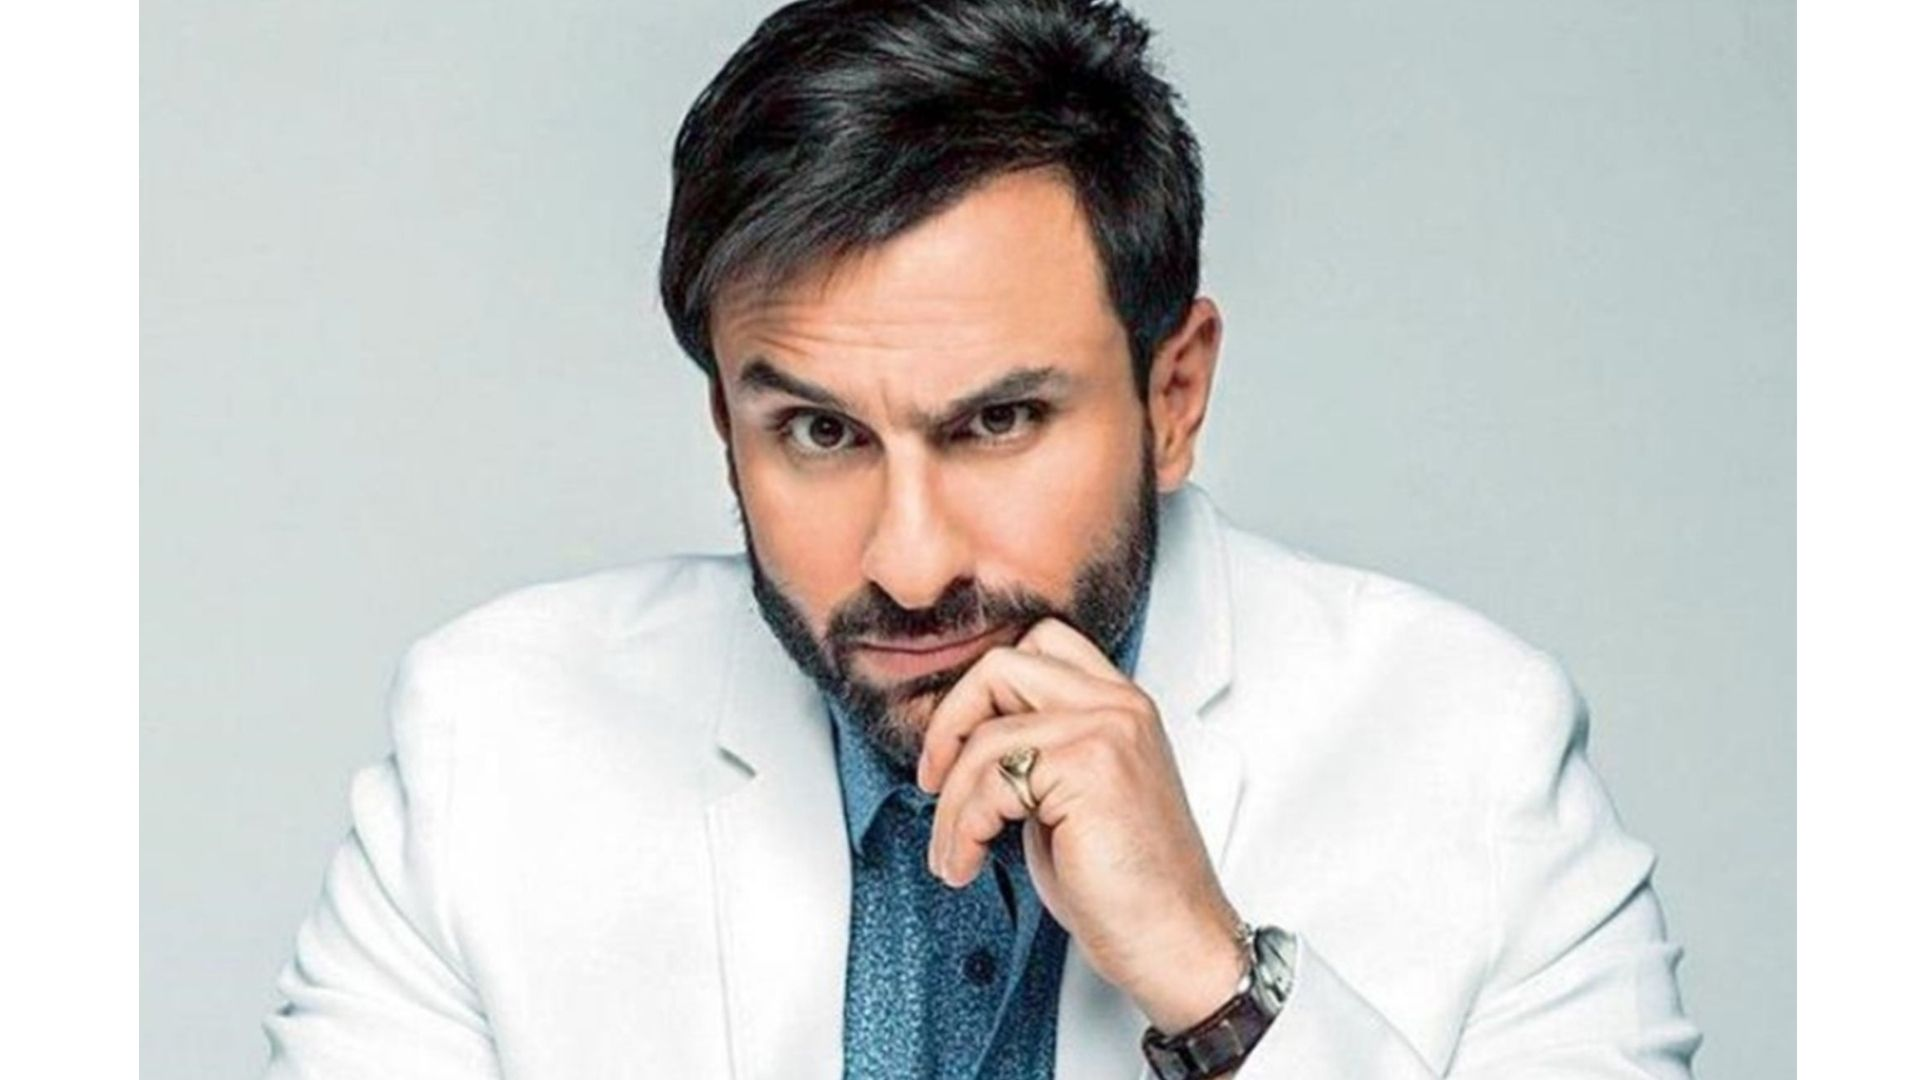 Saif Ali Khan Likes To Stay Away From Social Media Probably Because His Comments Make Headlines; Here's Proof